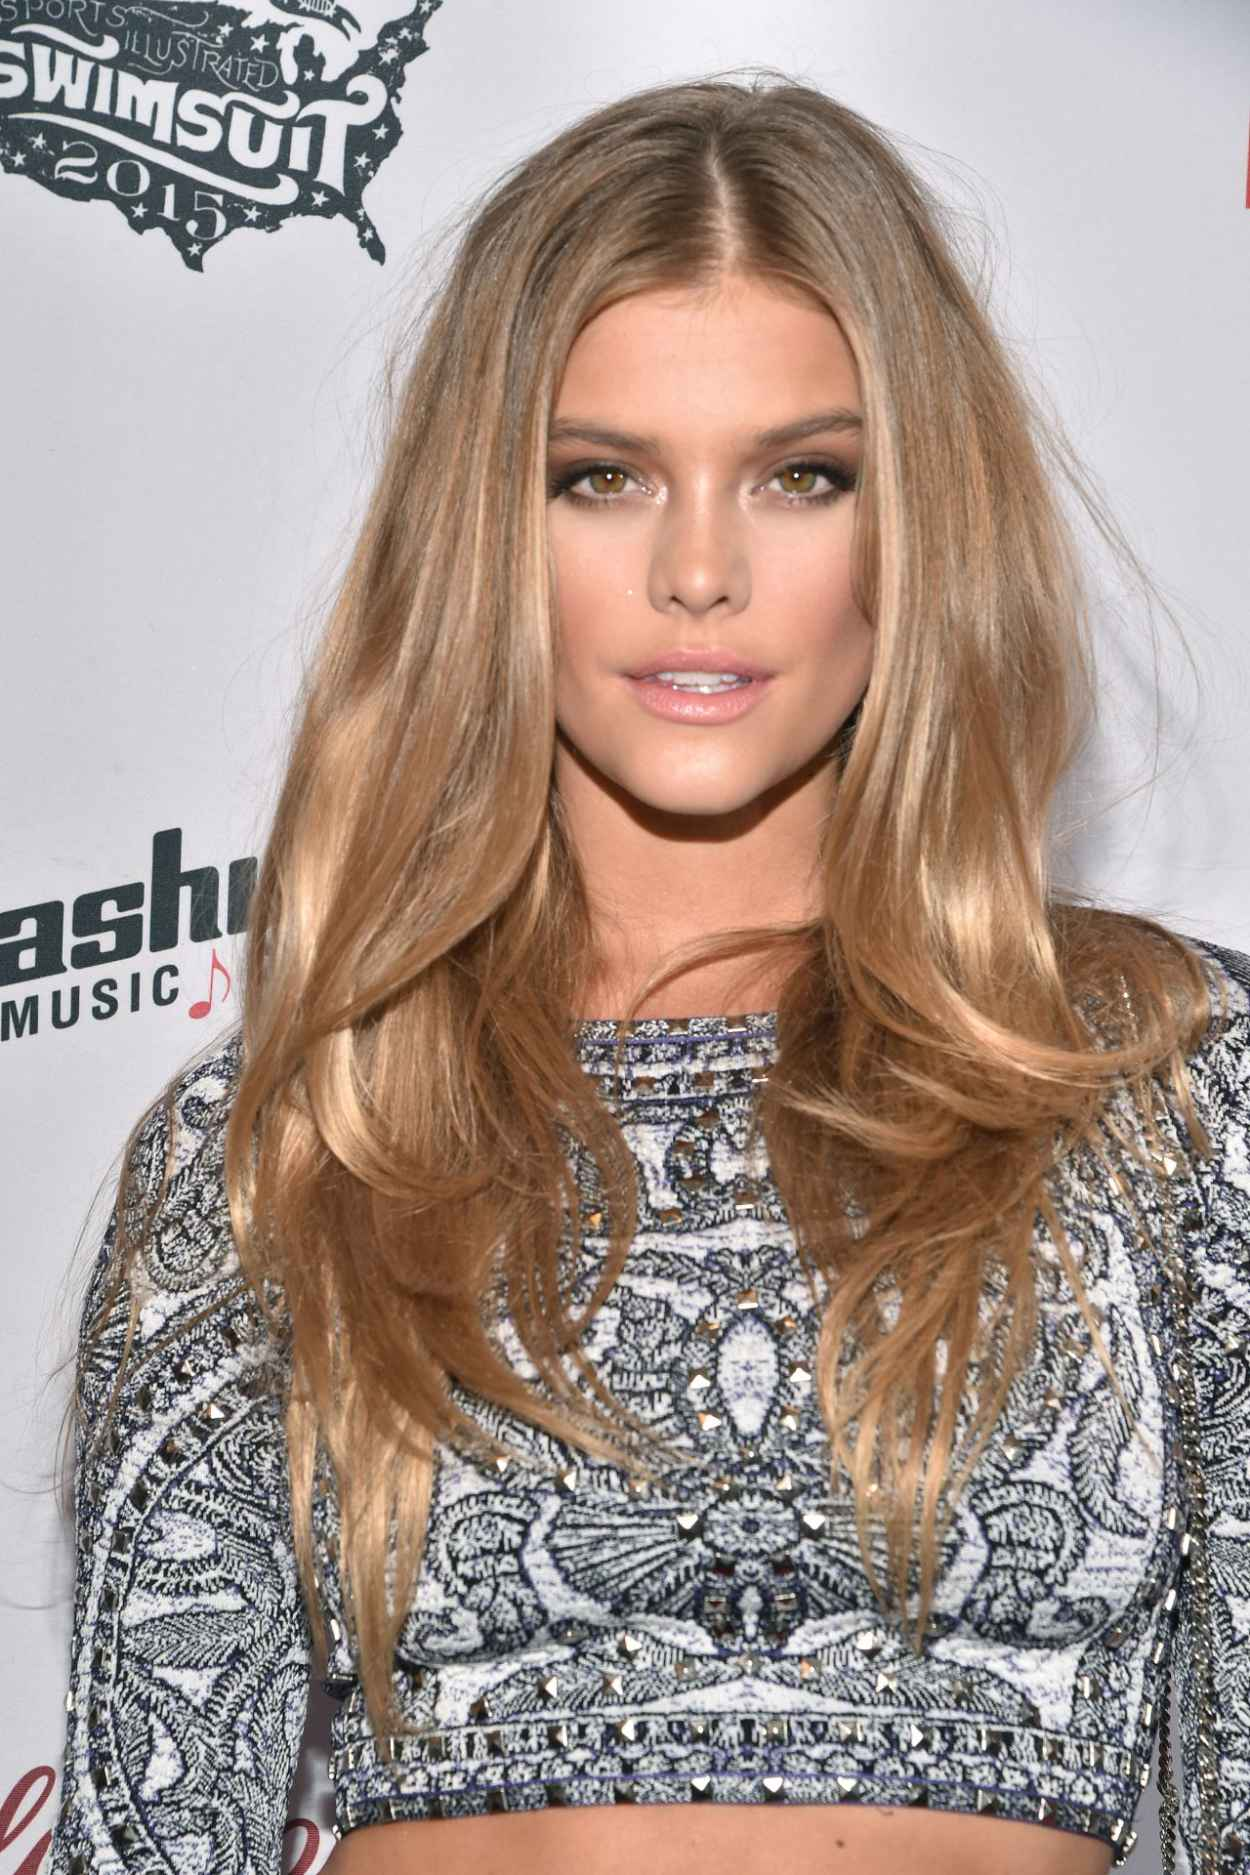 Nina Agdal - 2015 Sports Illustrated Swimsuit Issue Celebration in New York City-1